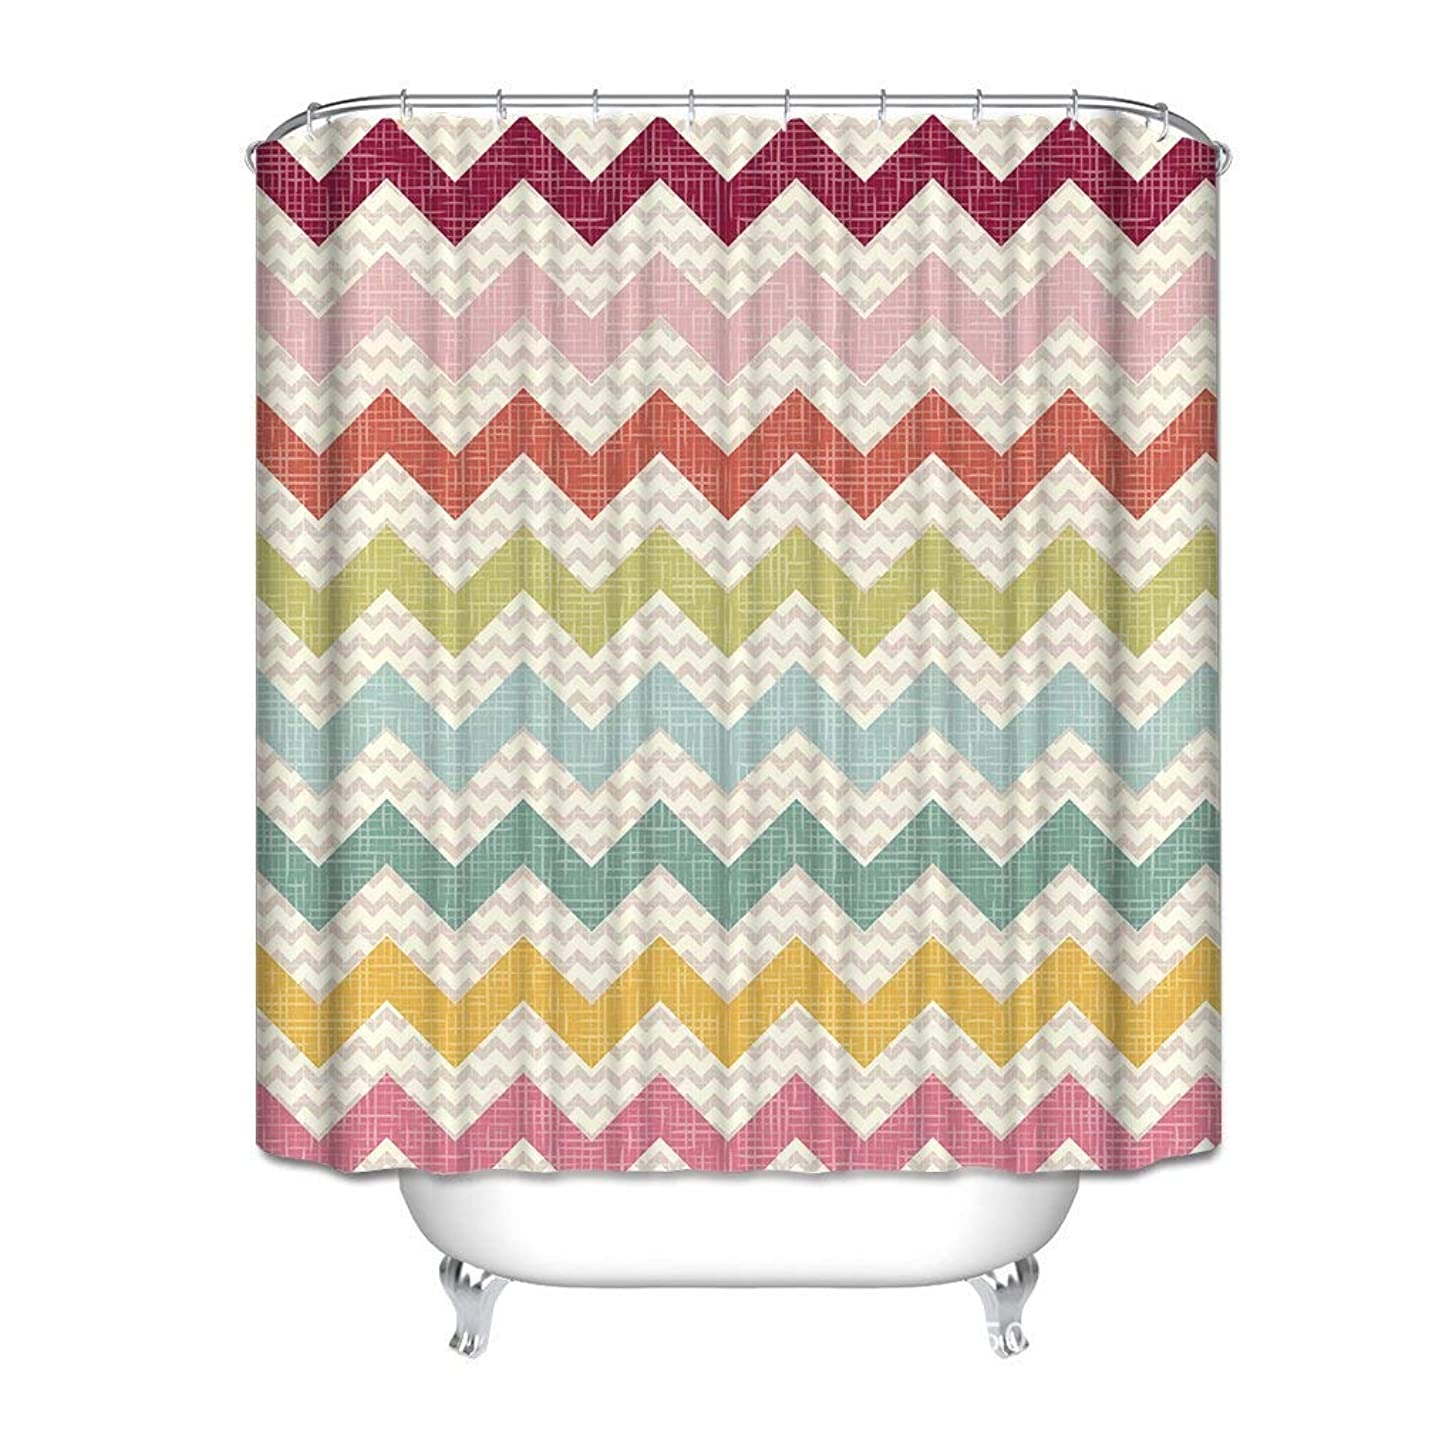 SPXUBZ Ombre Chevron Rainbow Colorful Zig Zag Pattern Accessories Fashion Ornamental Artist Western Shower Curtain Waterproof Bathroom Decor Polyester Fabric Curtain Sets Hooks